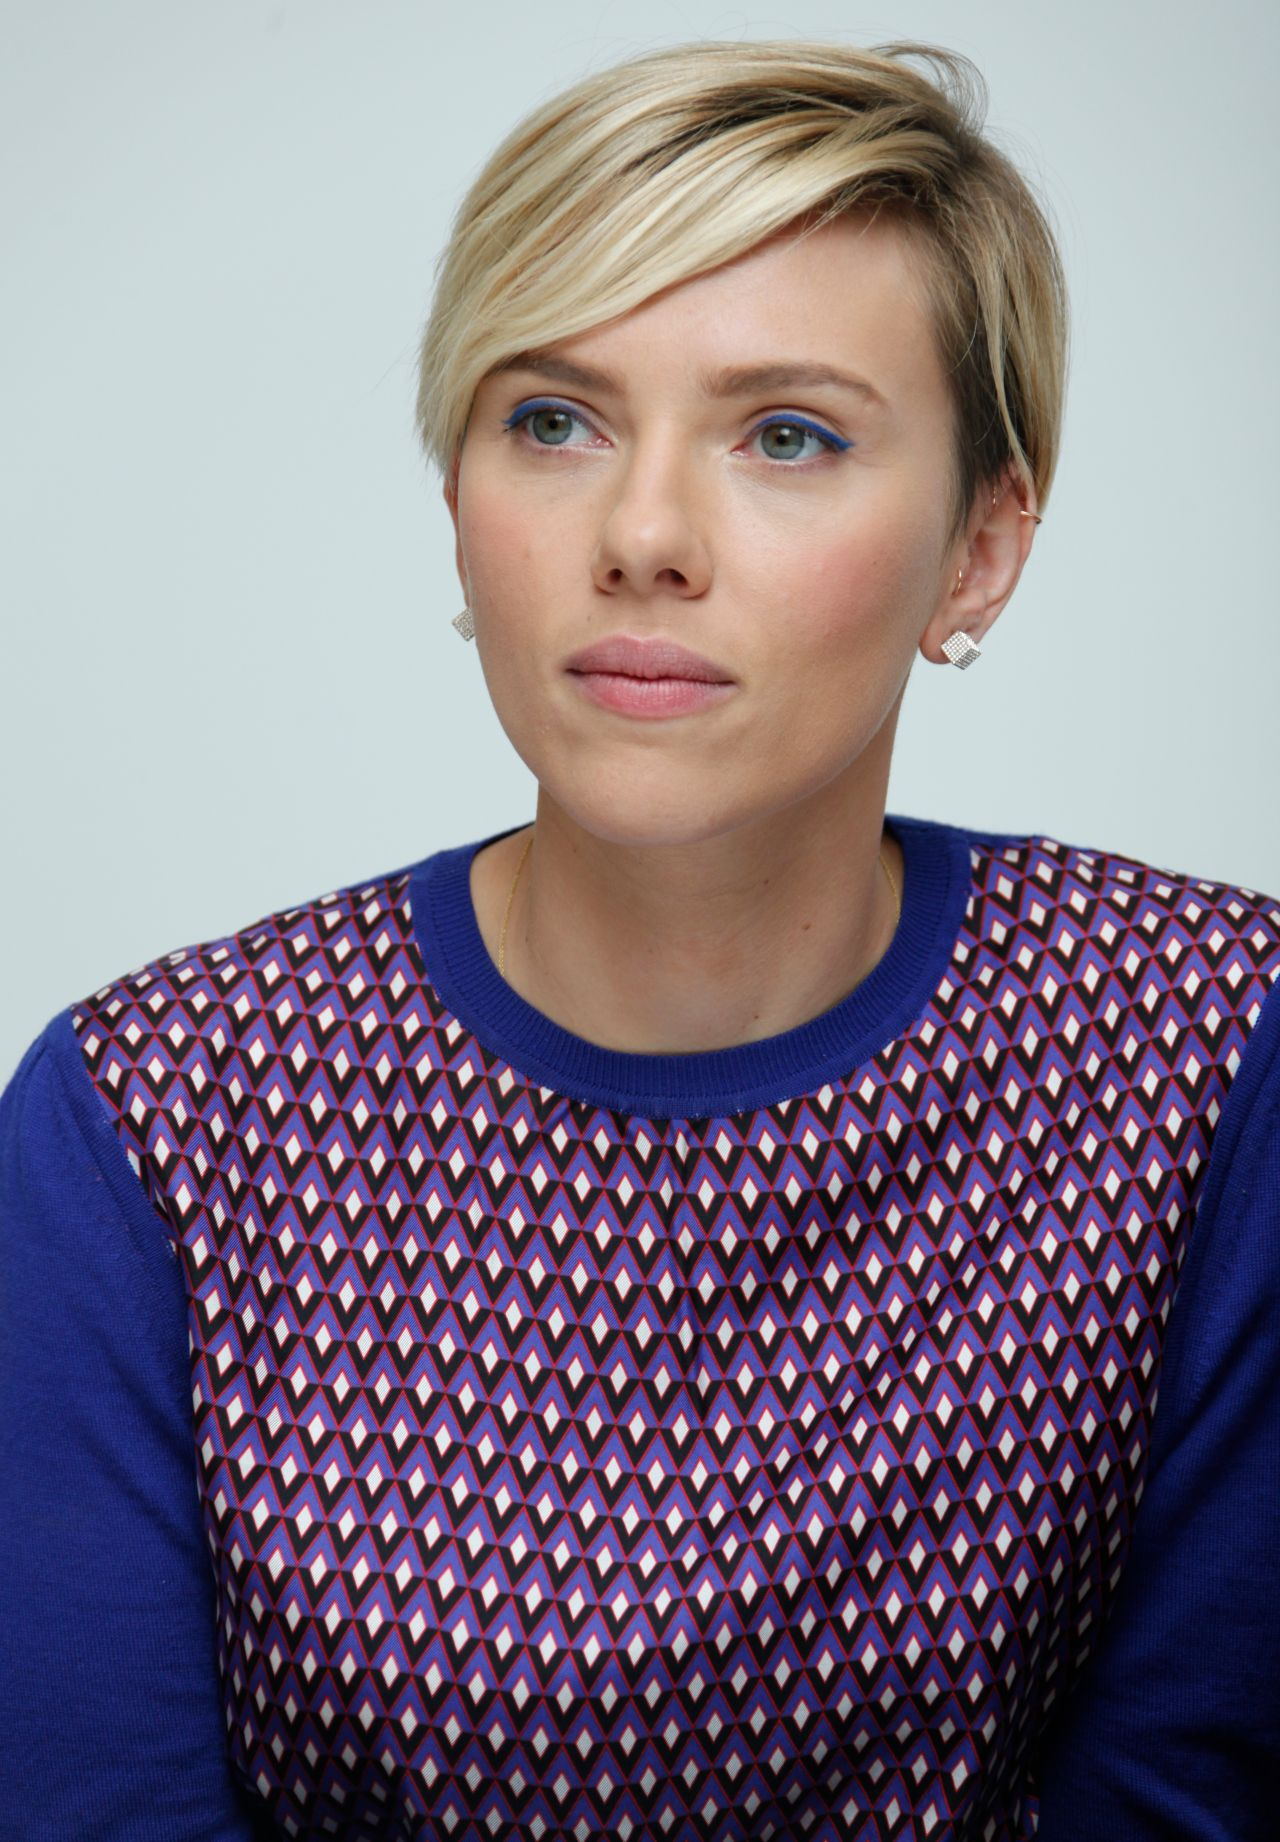 scarlett-johansson-avengers-age-of-ultron-press-conference-in-burbank_1.jpg